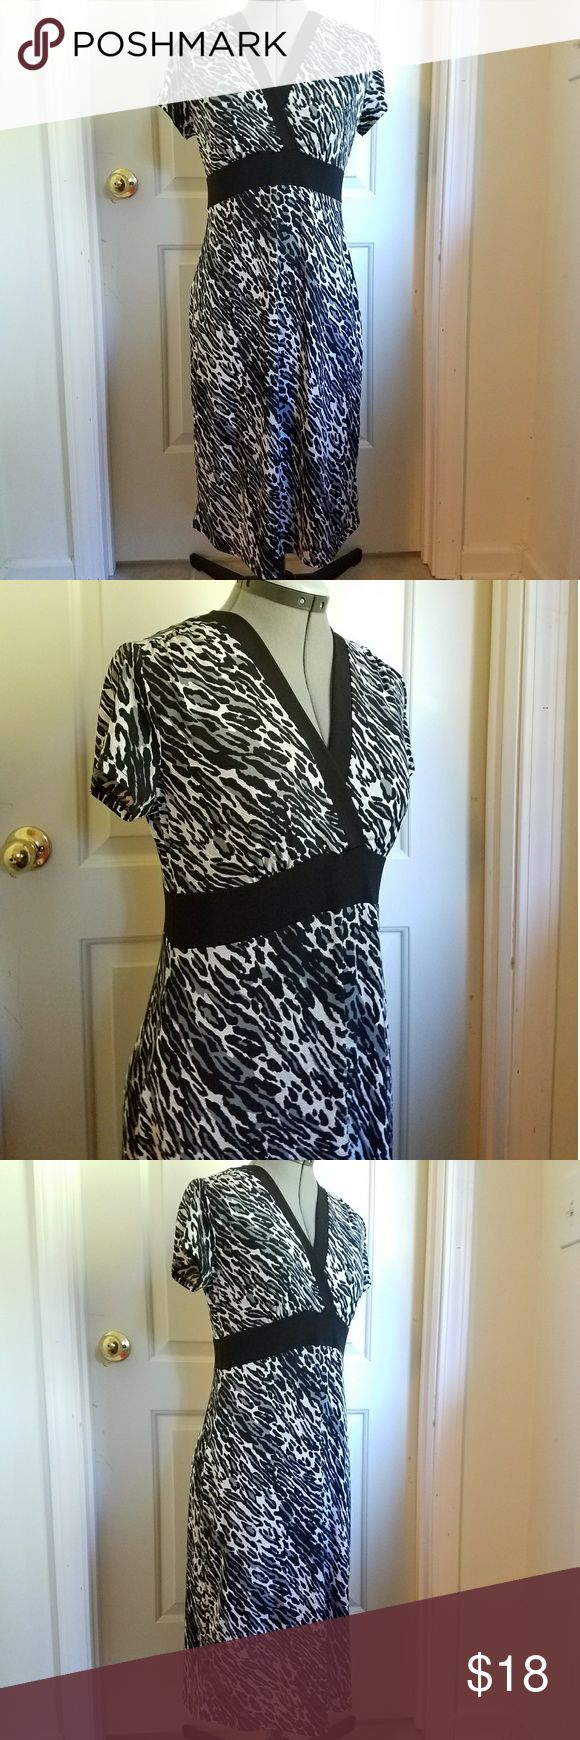 Black, White and Grey zebra print dress Very cute and flirty grey and black Zebra print dress from the Access Liz Claiborne collection. Perfect no wrinkle dress for travel or on the go.   No trades. If you see something you like, I'malways open to negotiate, and I give discounts on all bundles! Thanks for looking and I appreciate your purchase Liz Claiborne Dresses